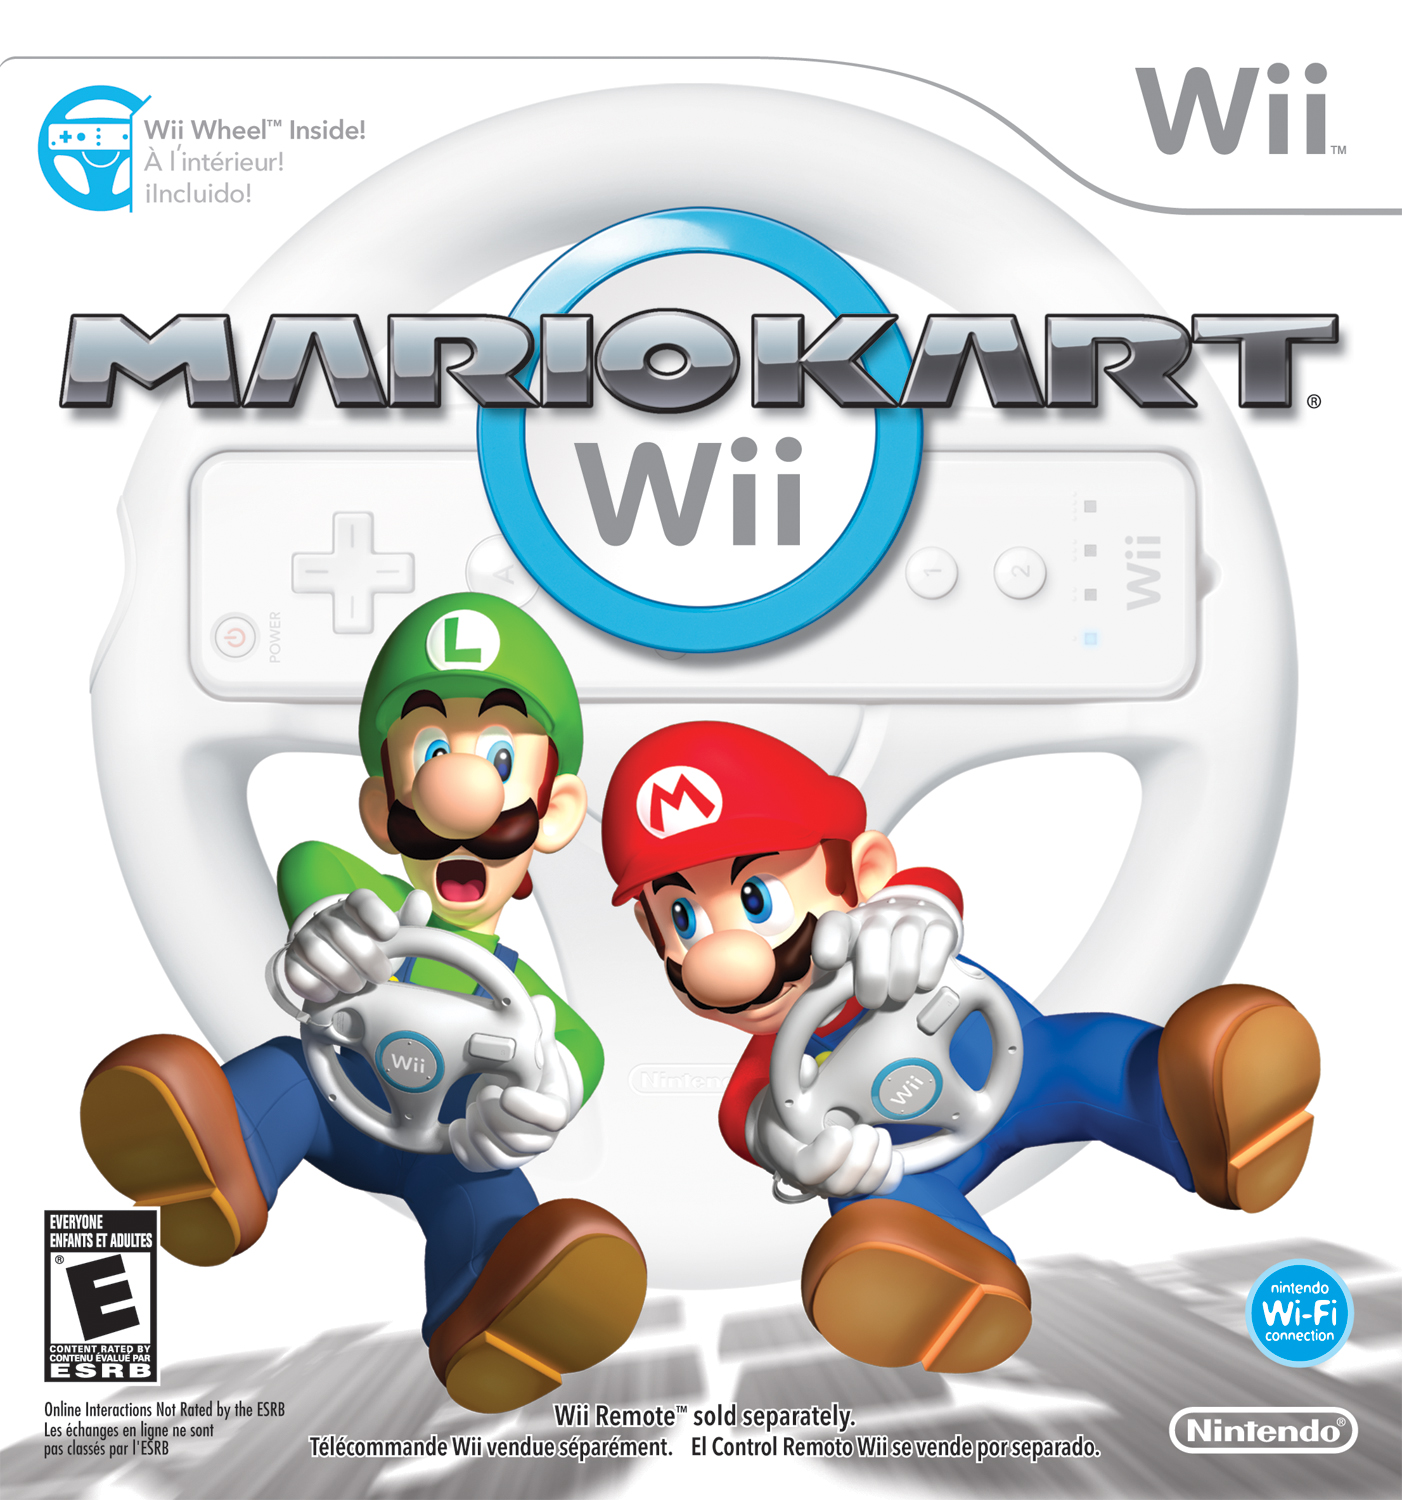 Mario Kart Wii Nintendo Fandom Powered By Wikia Gamecube Controller Wiring Diagram Right Stick